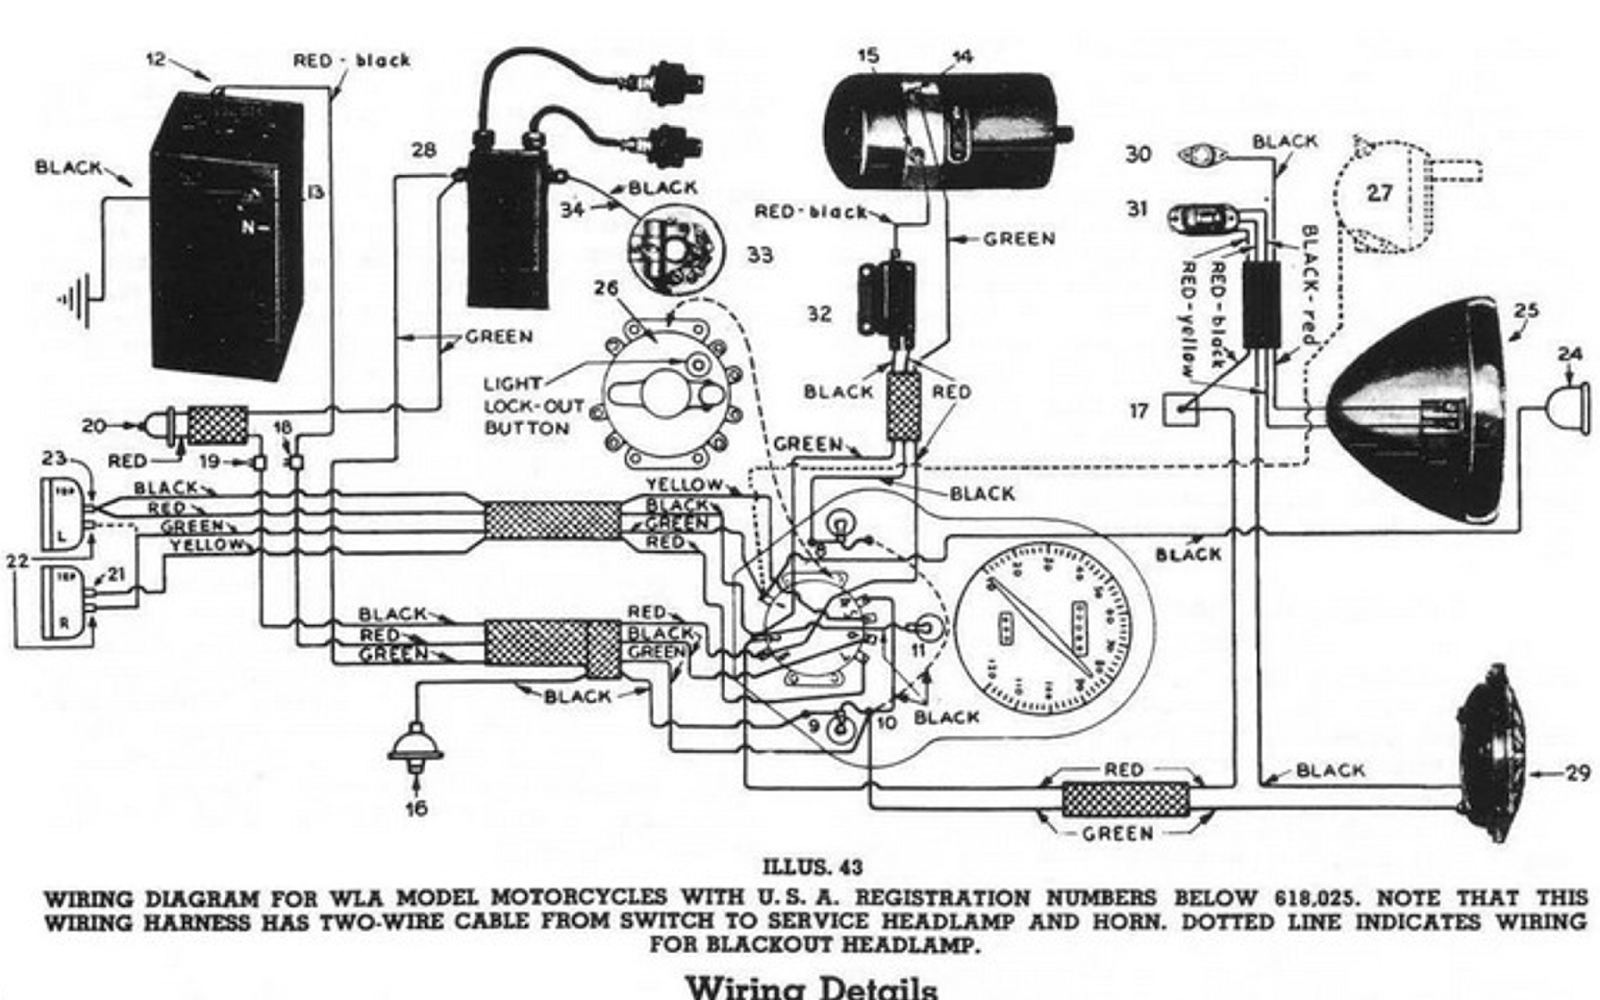 harley wiring diagram wires wiring diagram write1941 harley davidson wl restoration re wiring the harley davidson wl harley softail battery wiring harley wiring diagram wires